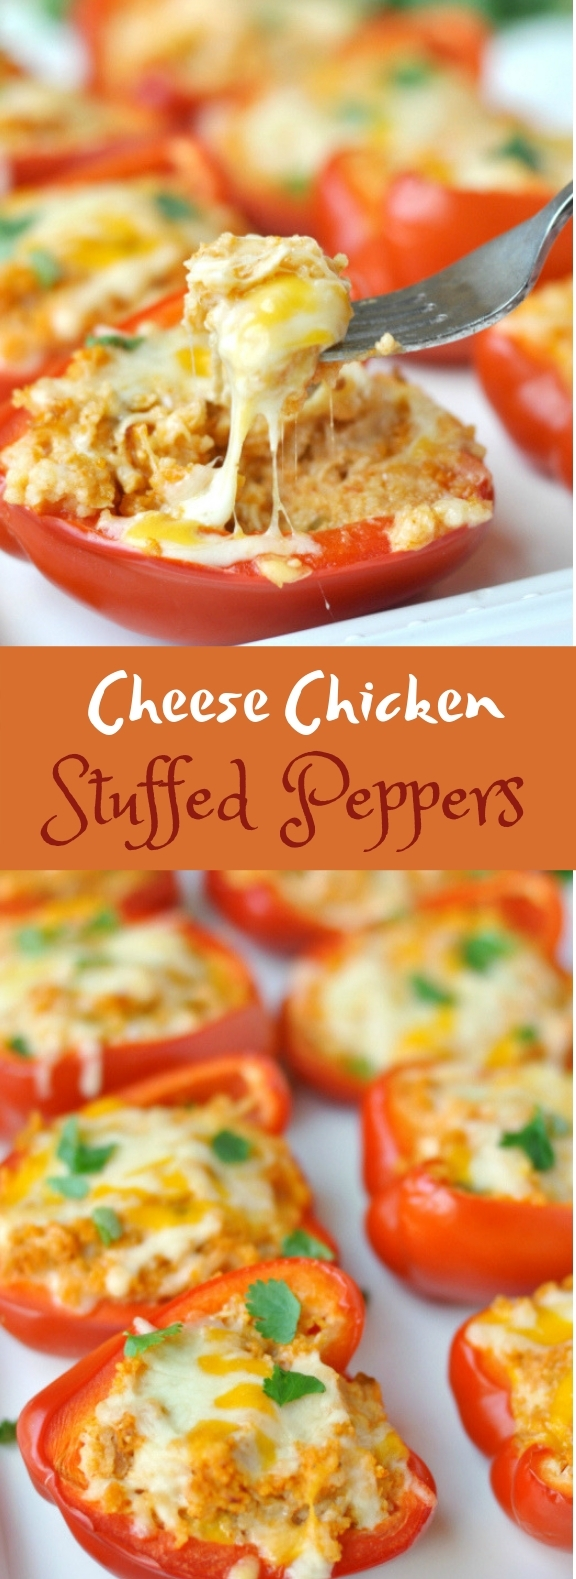 Cheesy Chicken Stuffed Peppers #healthy #lowcarb